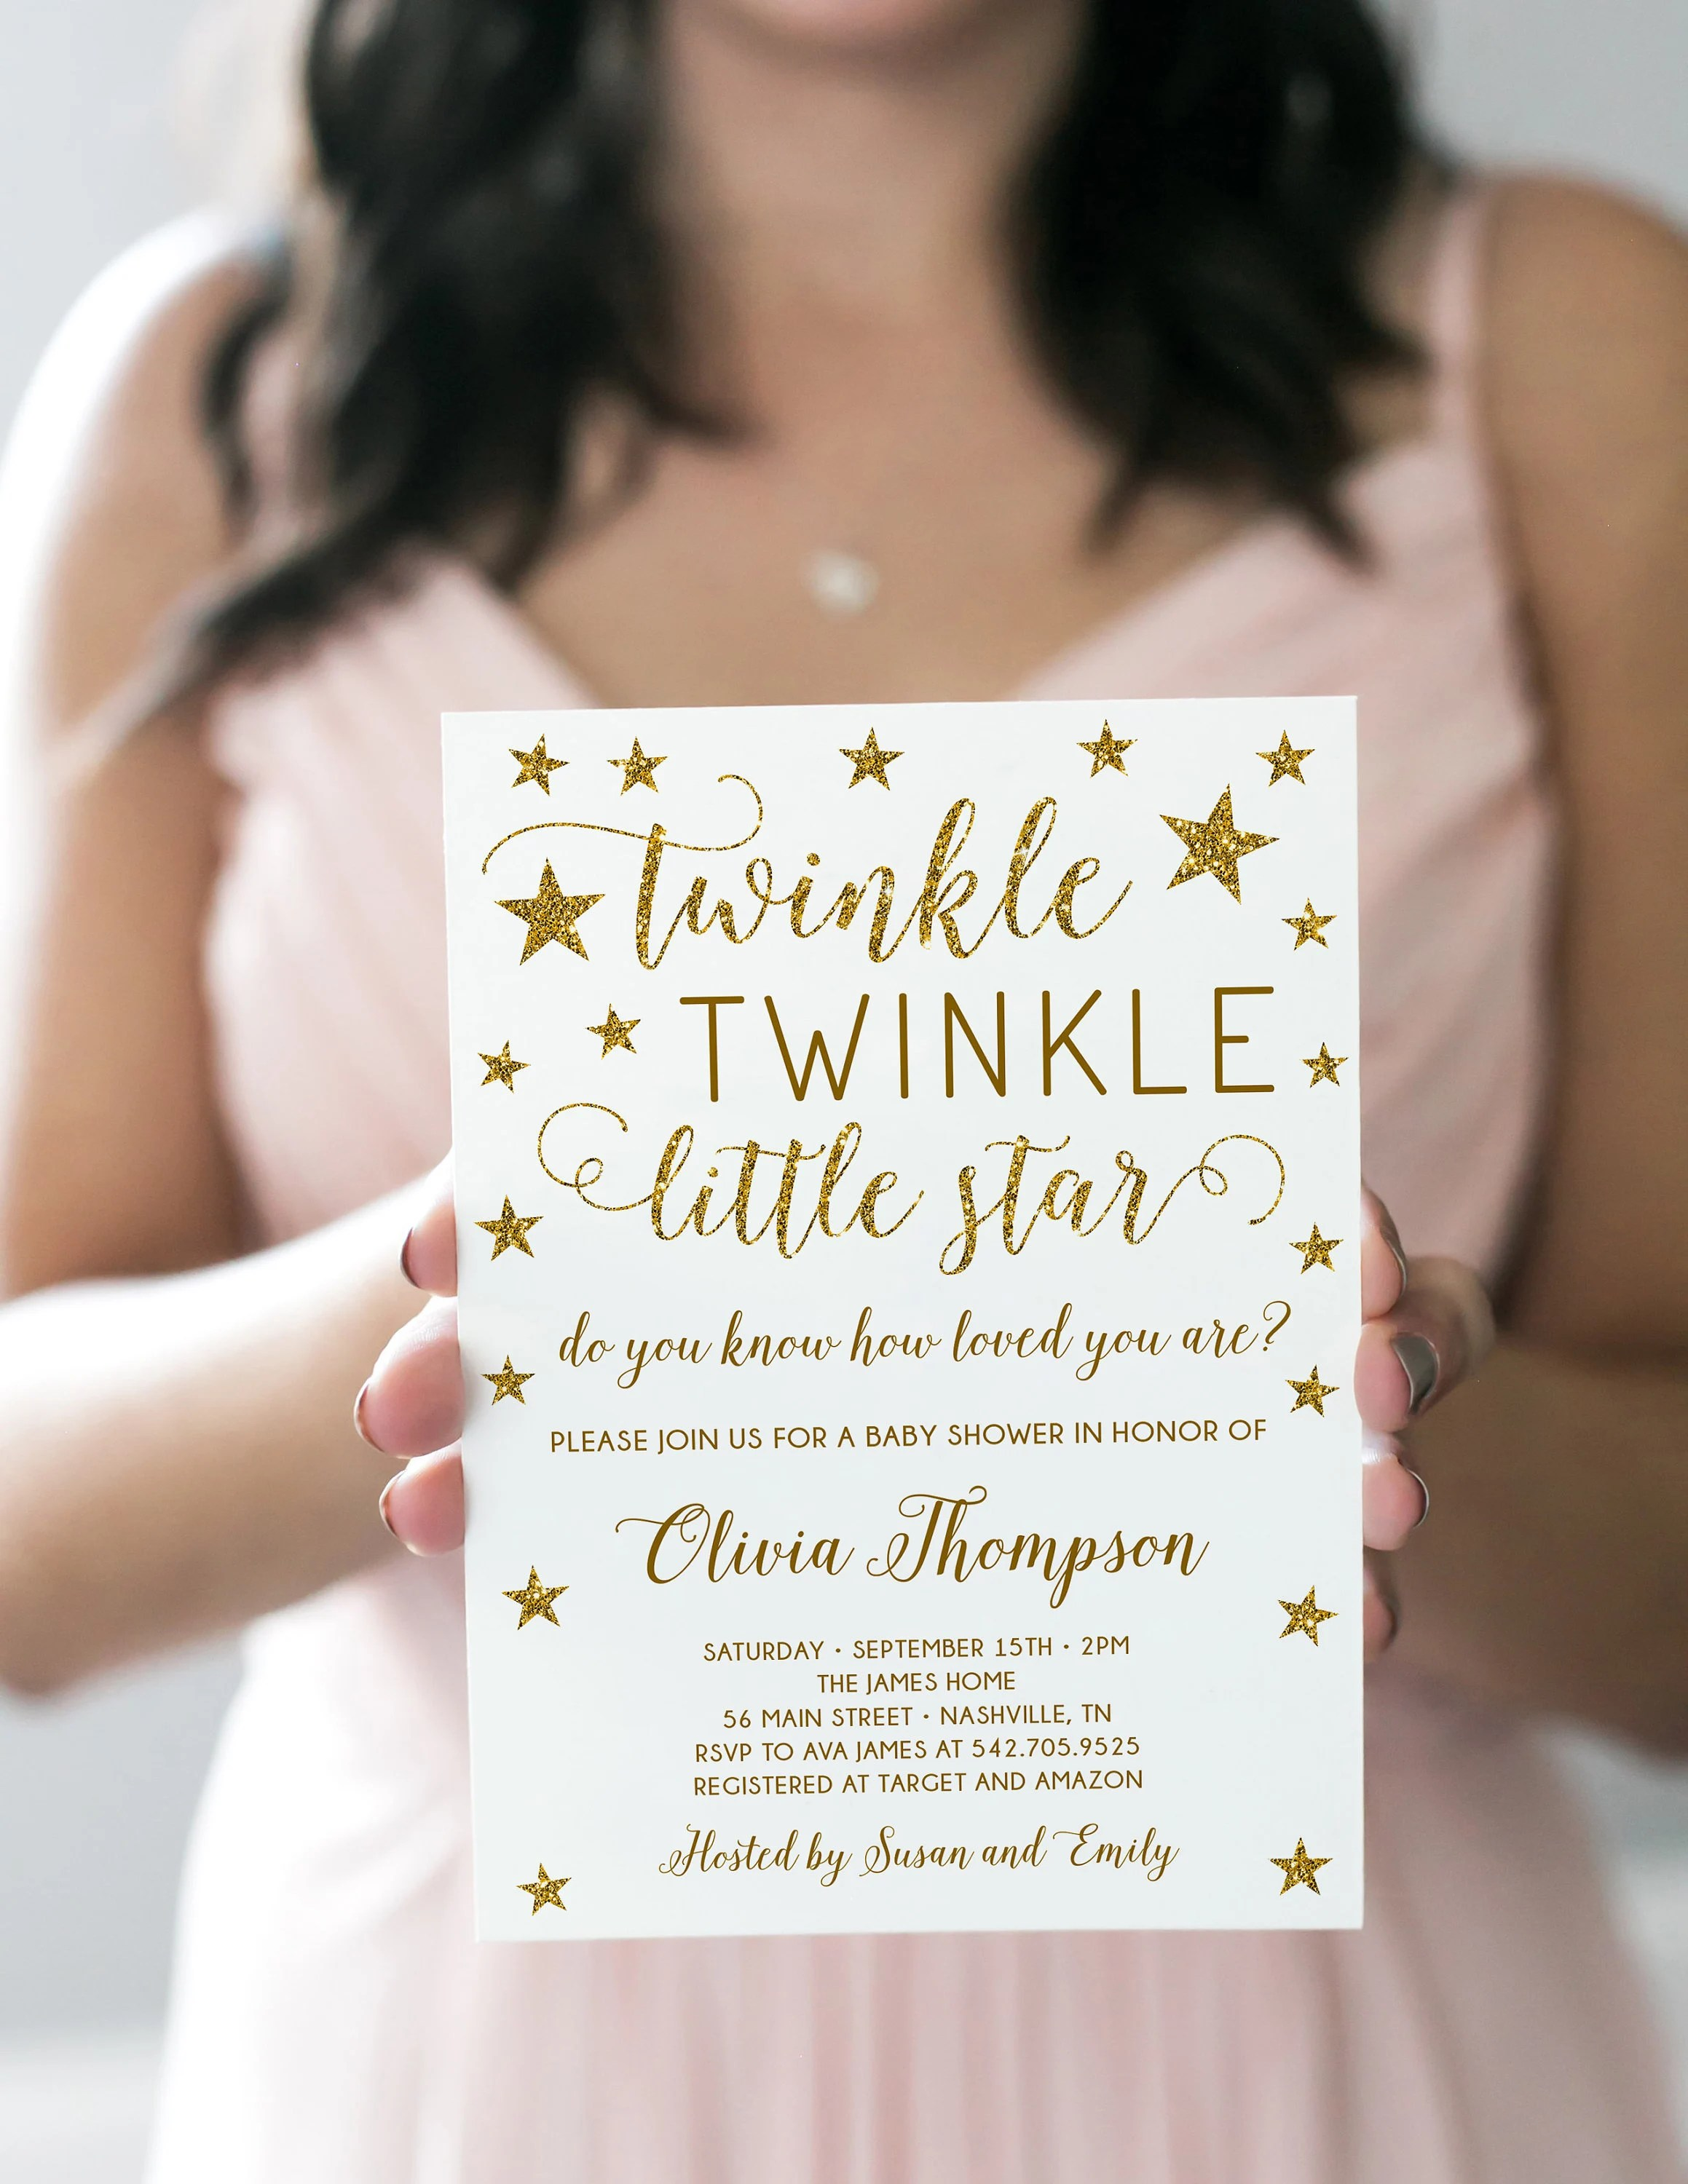 Twinkle Twinkle Little Star Baby Shower Invitation Wording : twinkle, little, shower, invitation, wording, Twinkle, Little, Shower, Invitation, Template,, Editable,, Glitter,, Gender, Neutral, Invitation,, Instant, Download, Party, Catch